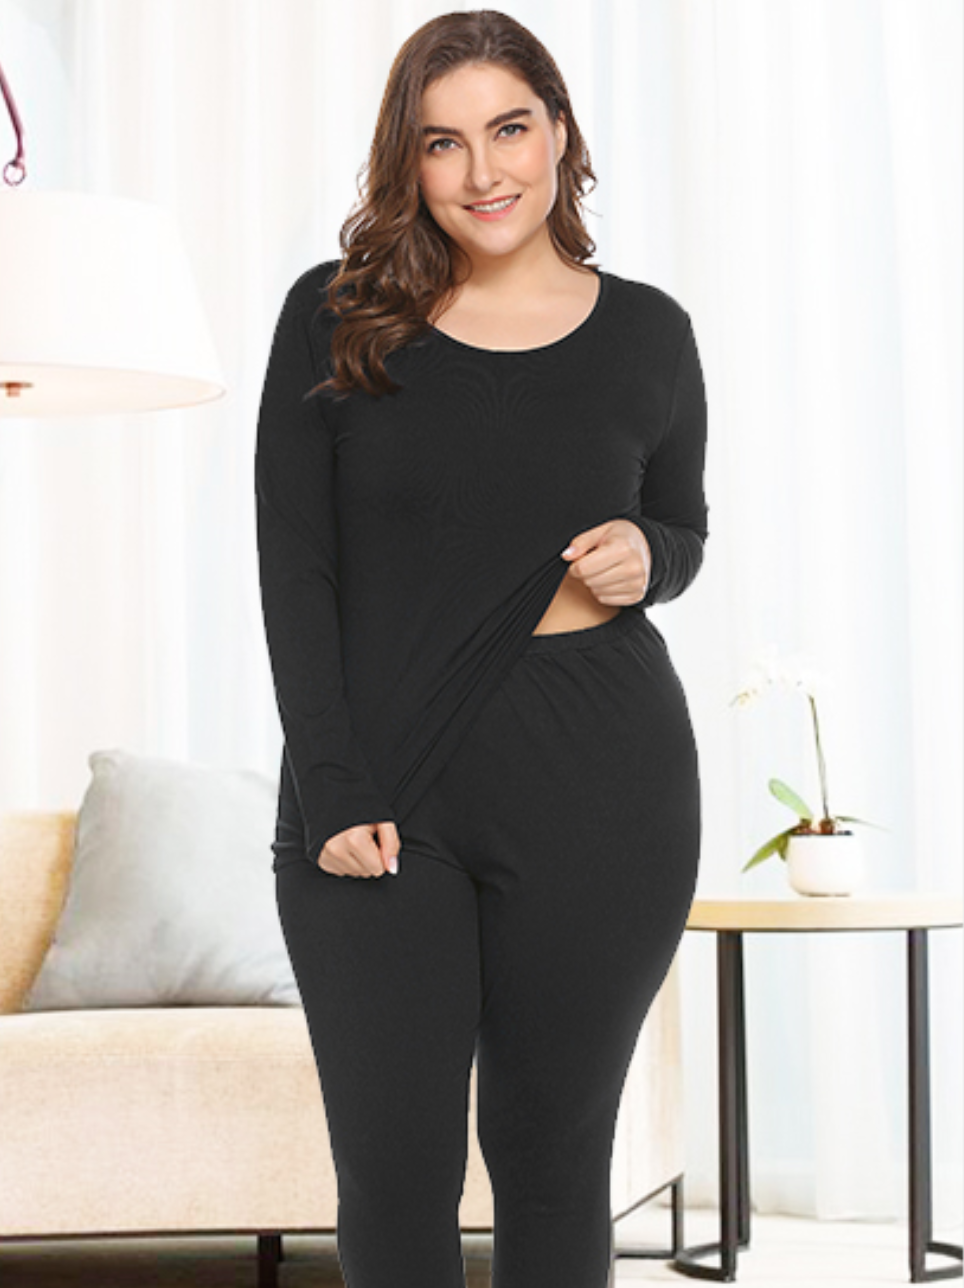 A person wearing matching black thermal leggings and a long-sleeved thermal top